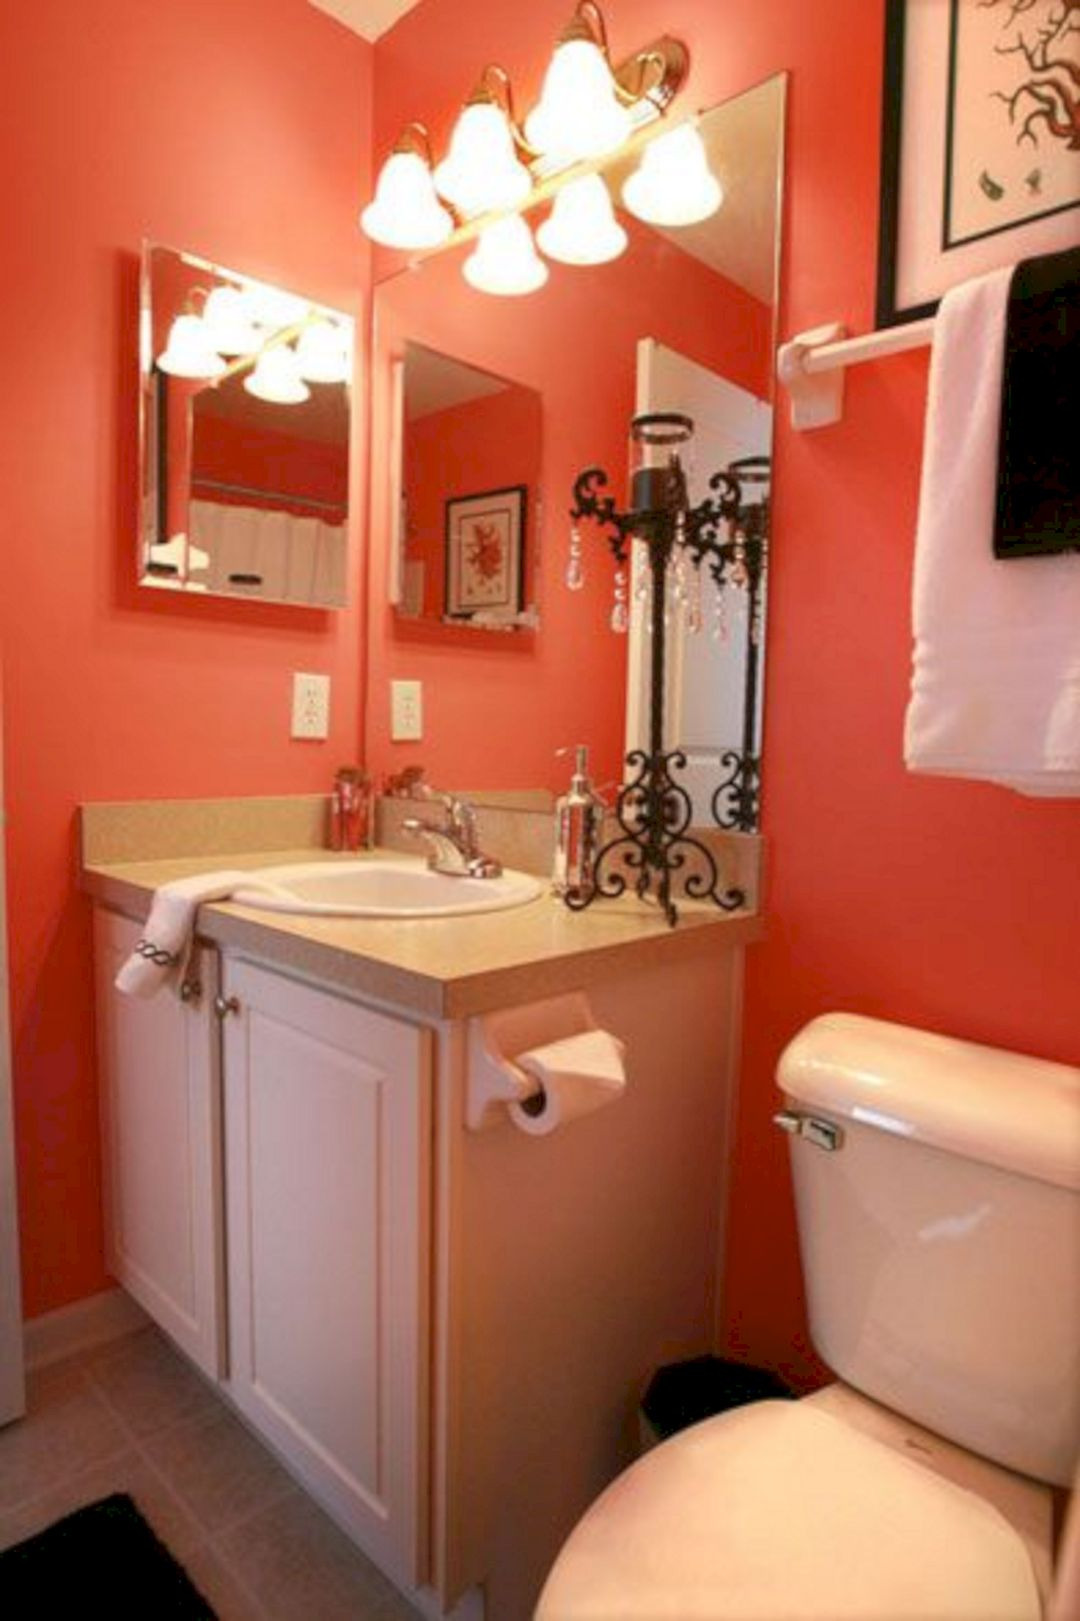 Coral Bathroom Decor Beautiful Teal and Coral Bathroom Decor 17 Teal and Coral Bathroom